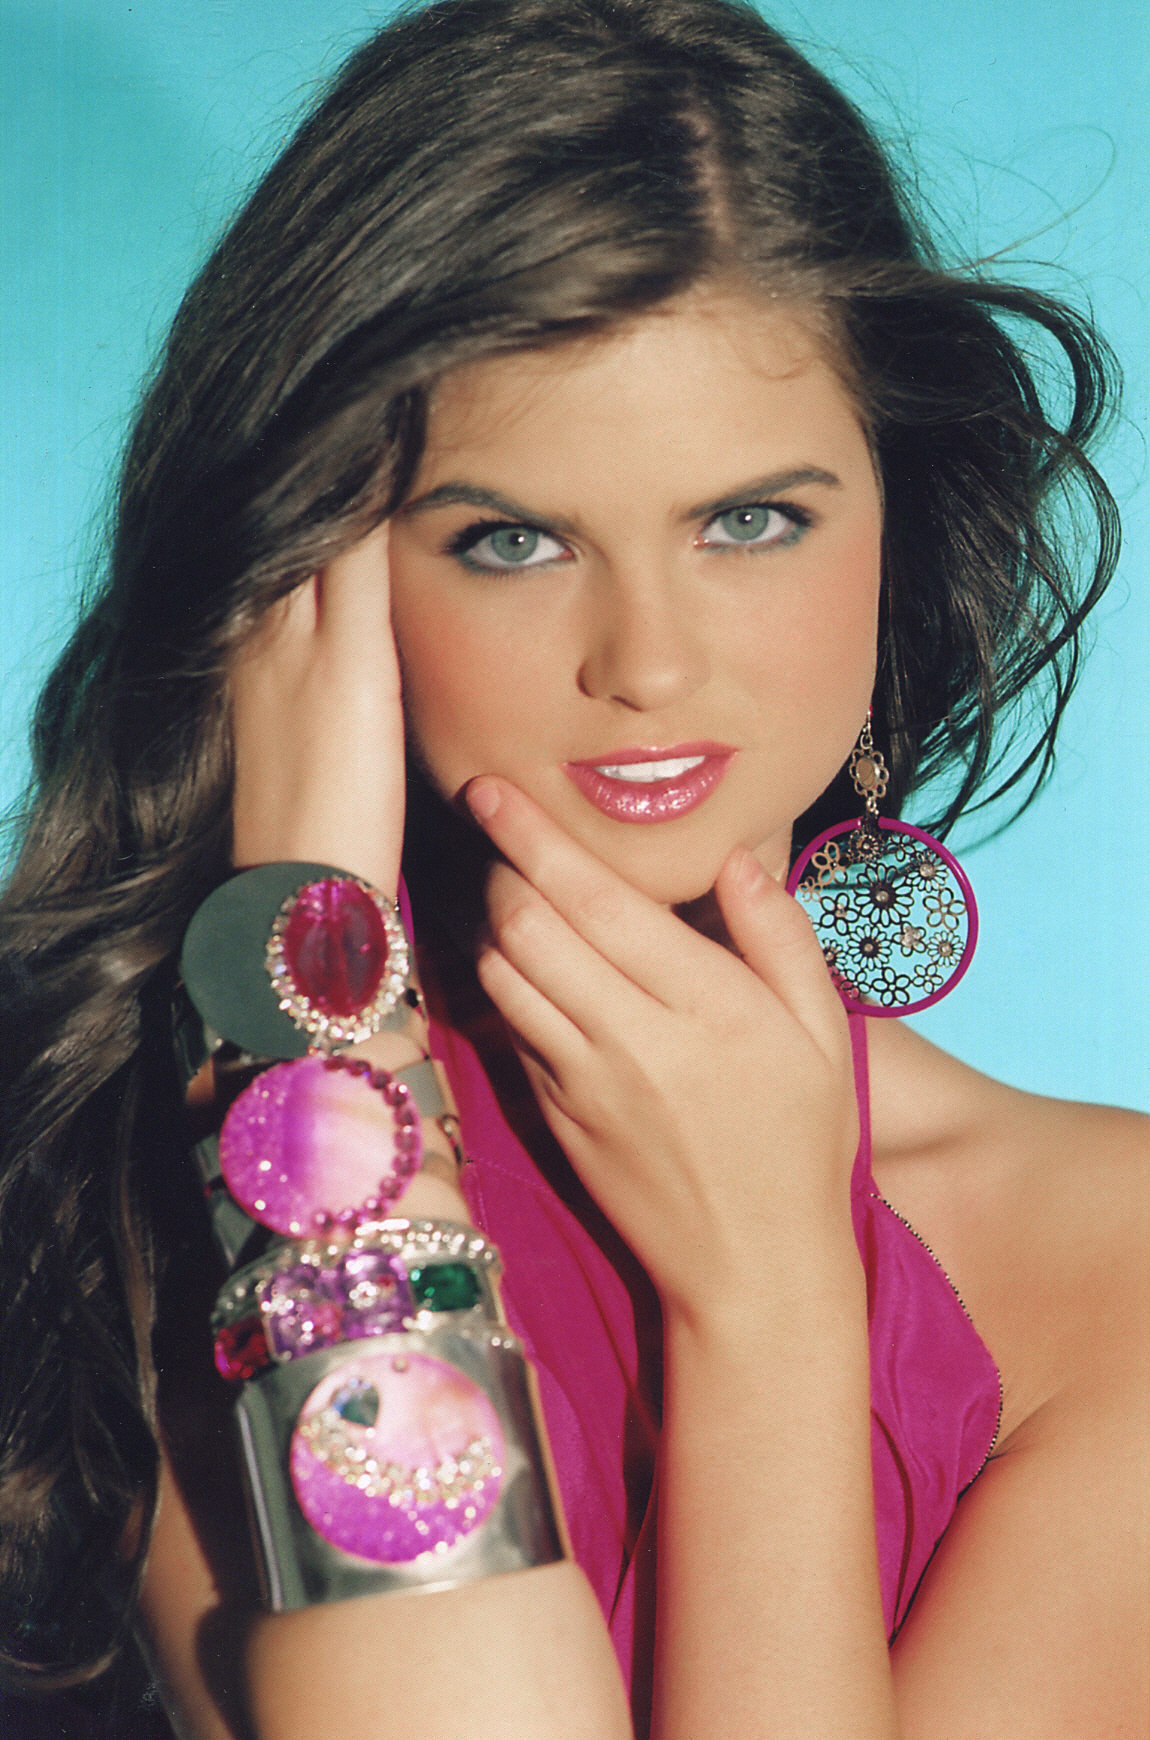 REBECCA is wearing 4 wide cuffs with colored stone embellishments.